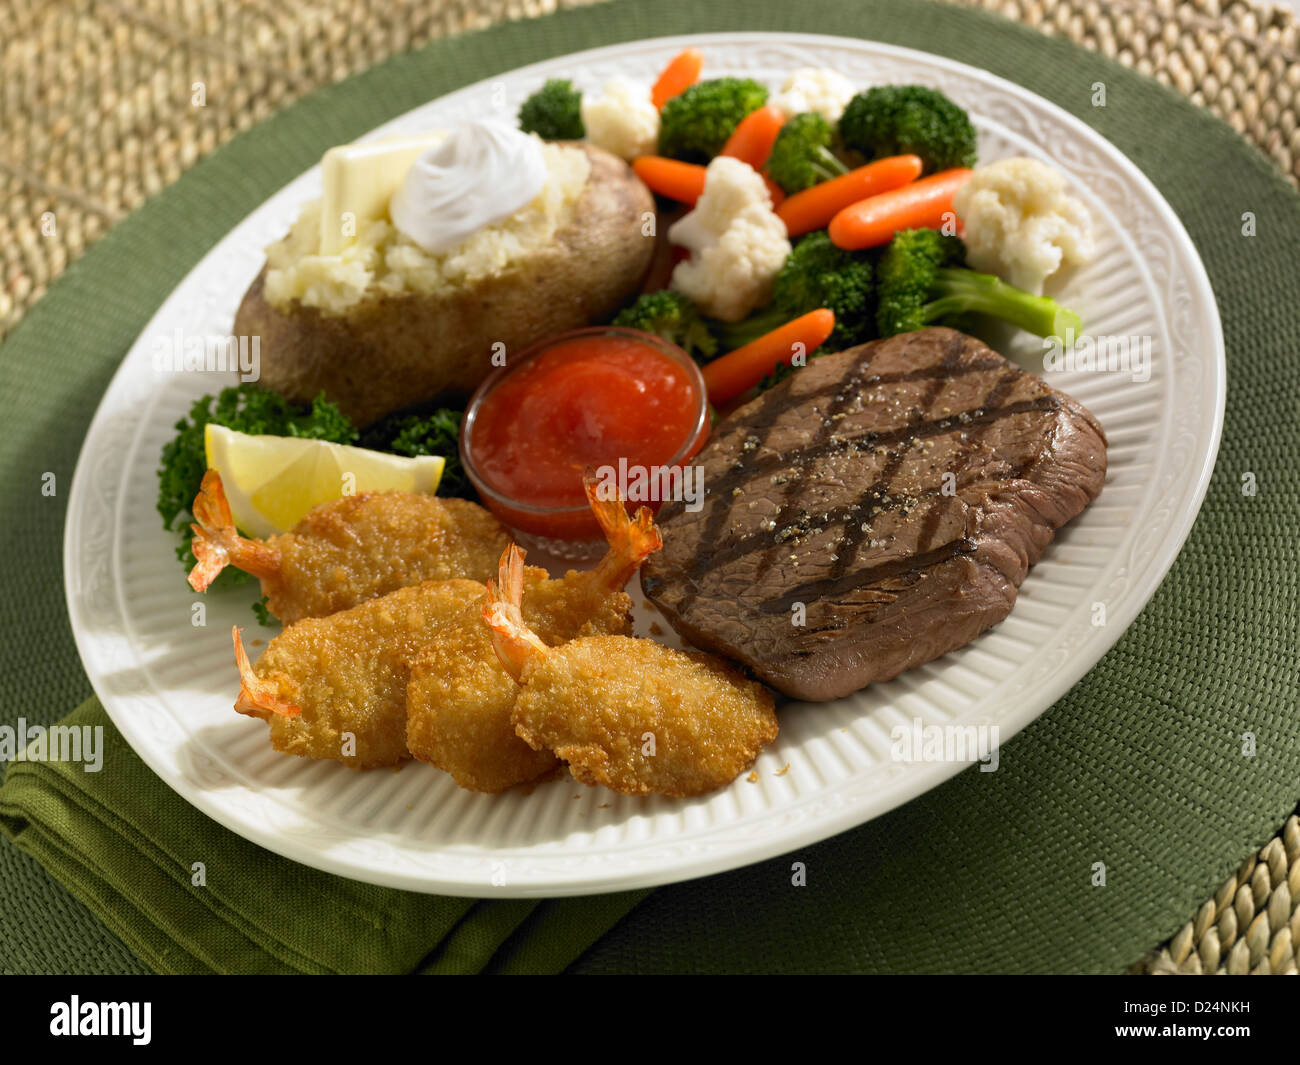 Steak And Fried Shrimp Dinner Served With Loaded Baked Potato And Vegetables